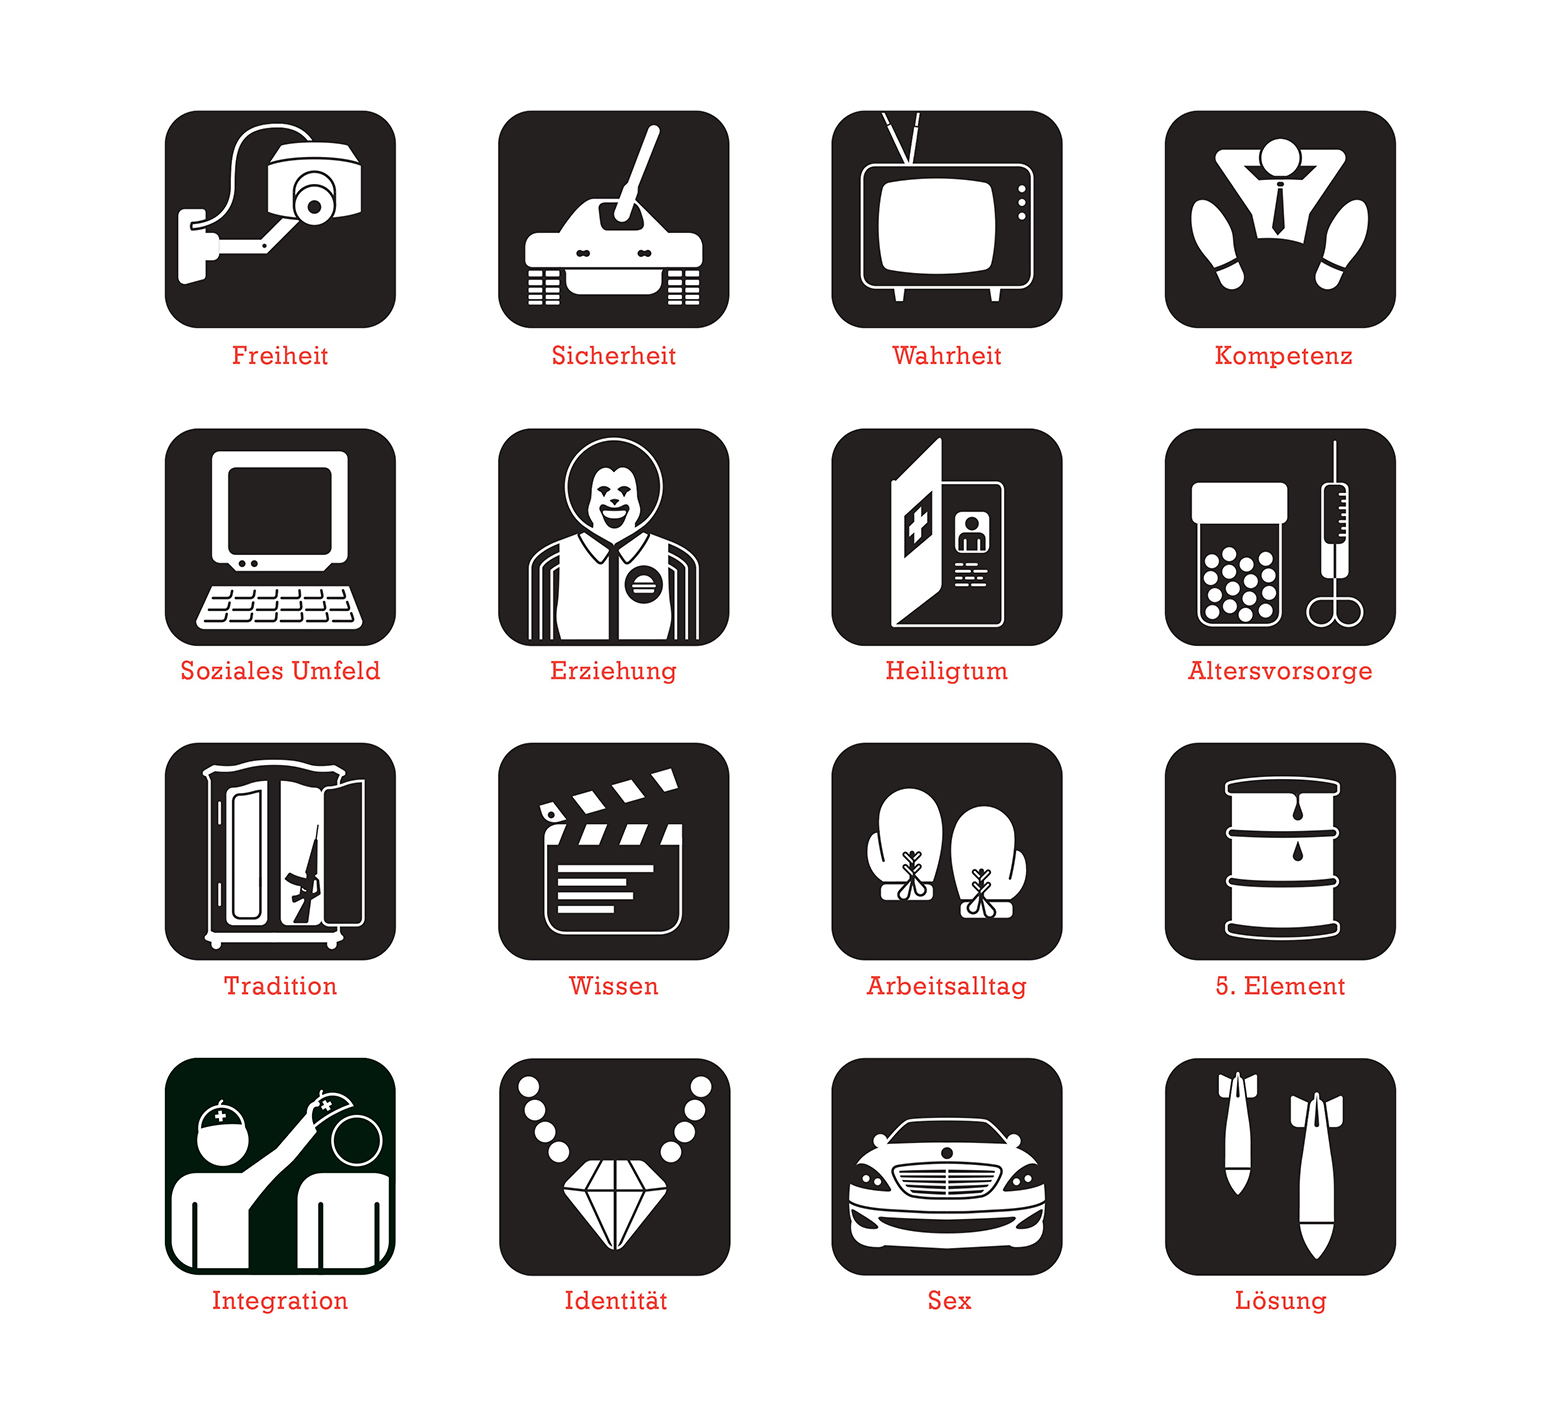 VW_pictograms_overview